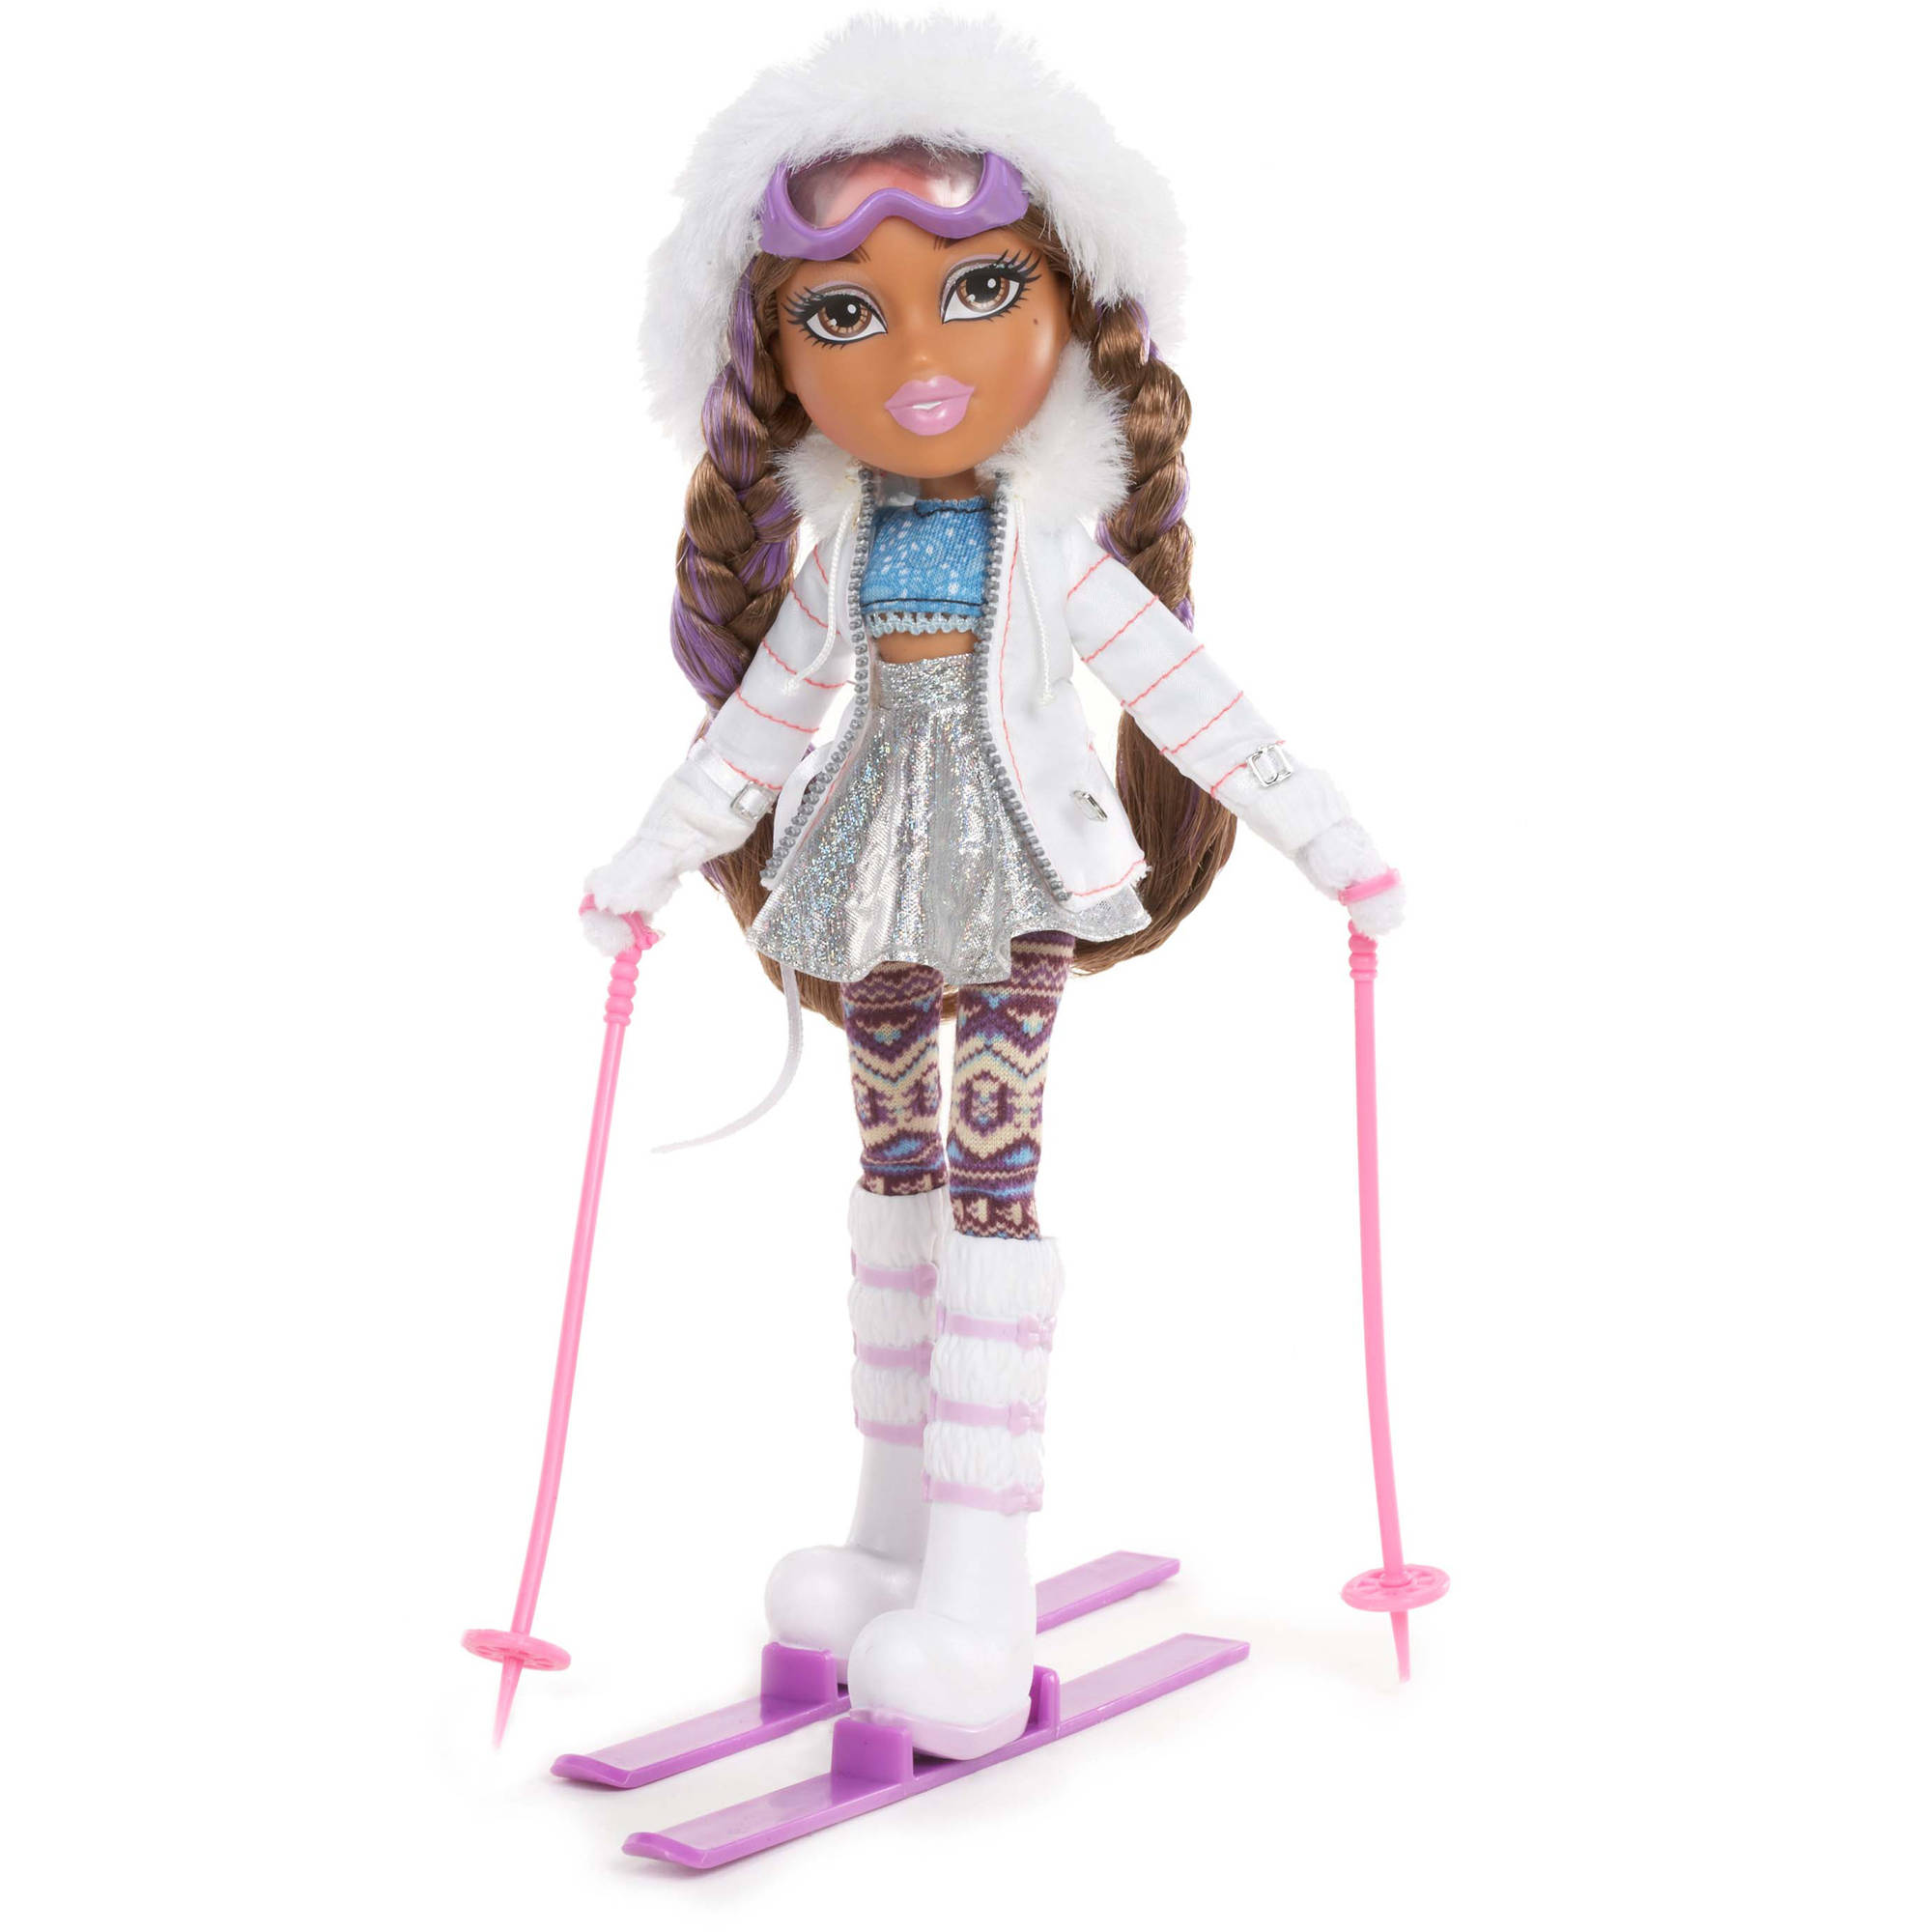 Bratz SnowKissed Doll, Yasmin by MGA Entertainment